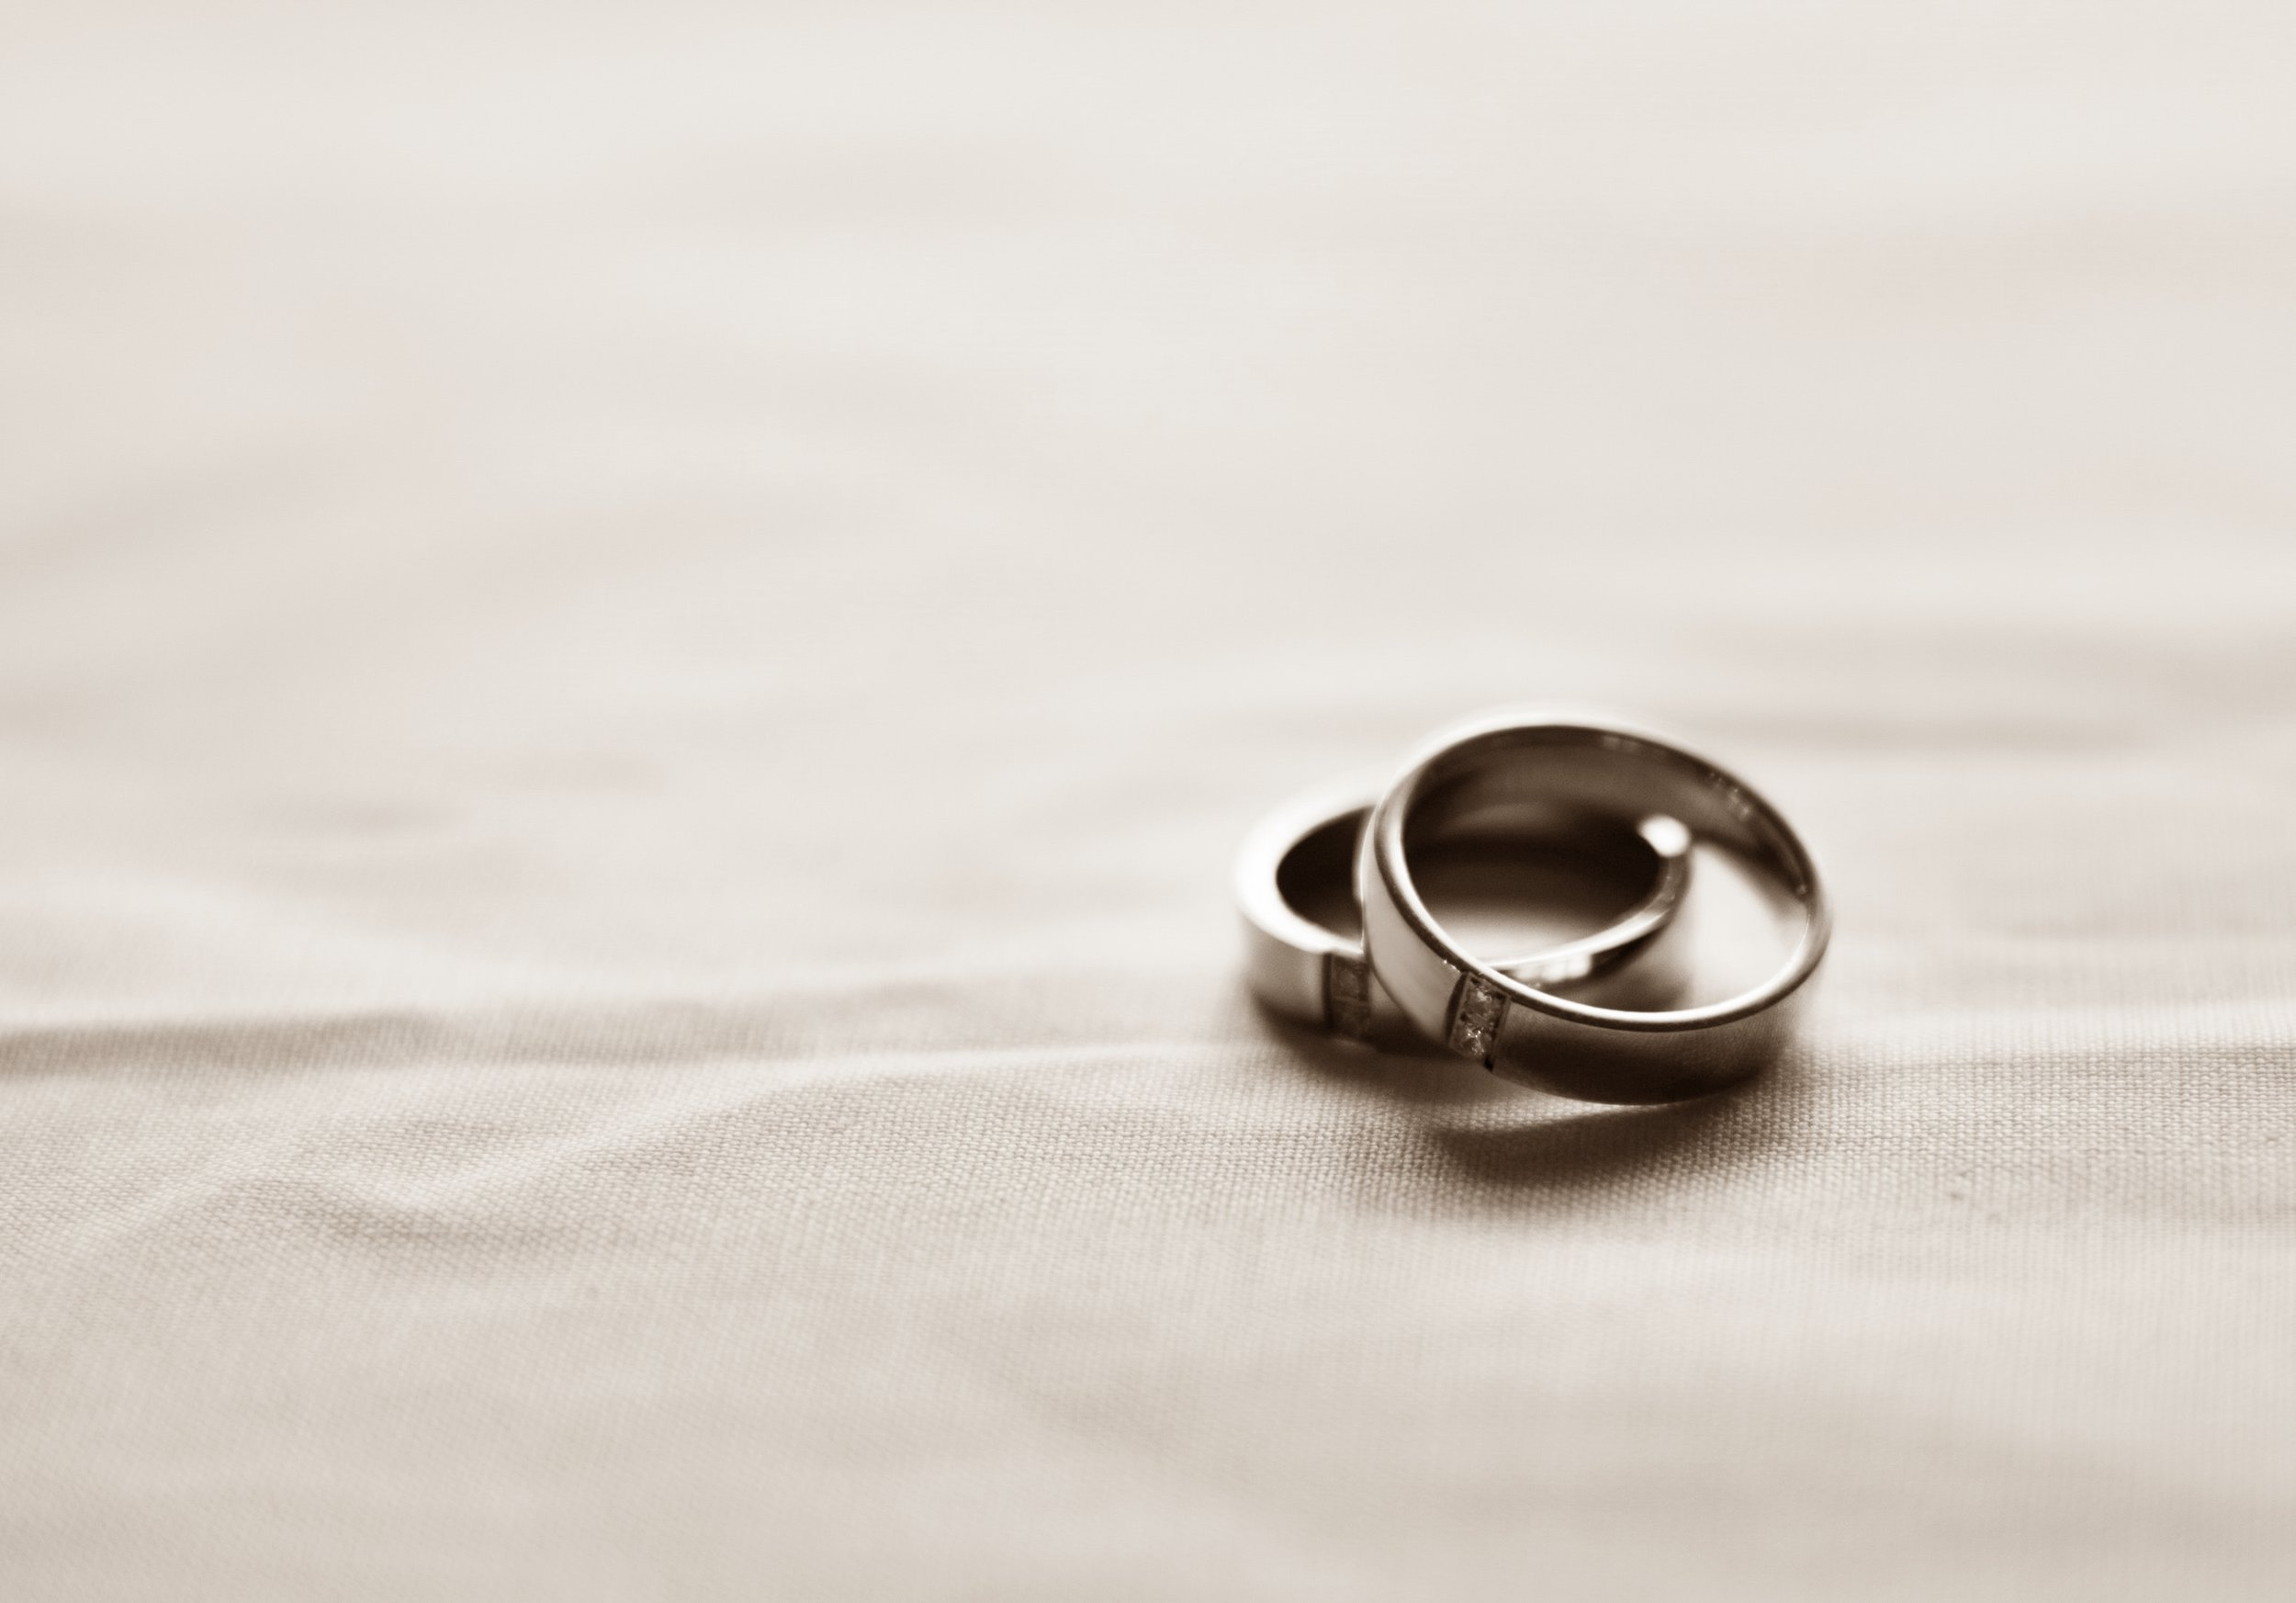 gold-jewelries-marriage-1345186.jpg